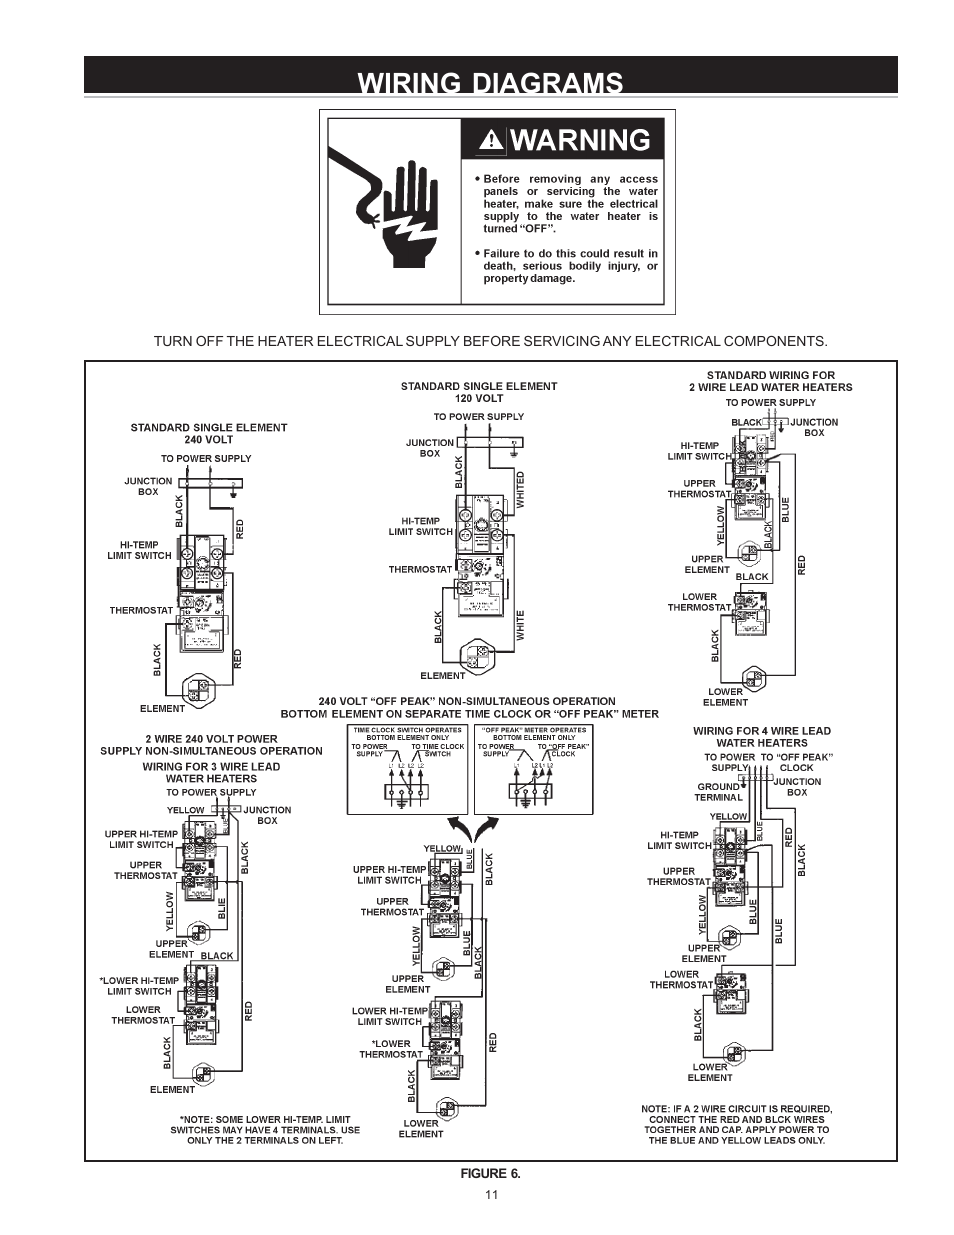 Wiring Diagrams State Es6 40 Somns K User Manual Page 11 28 Water Heater Diagram